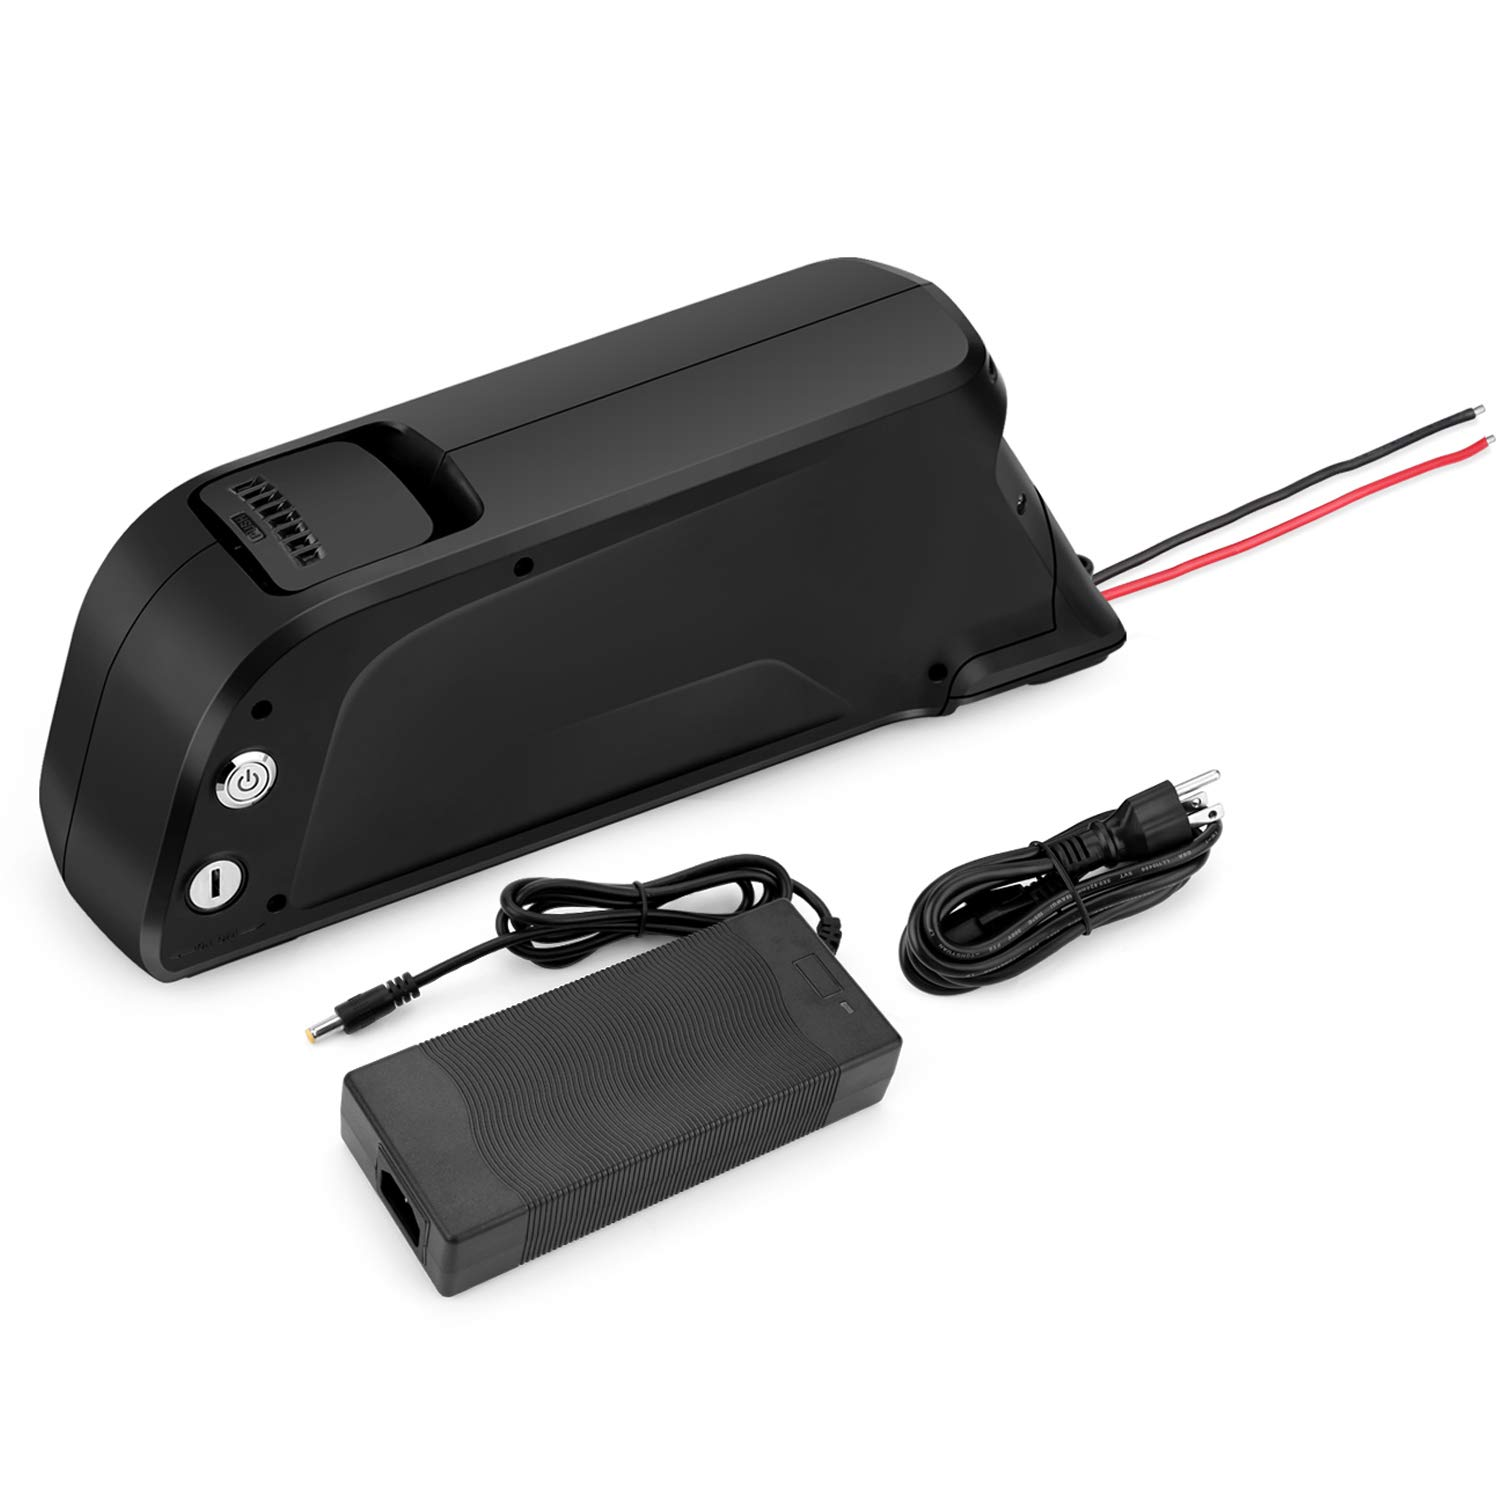 Sunbond EBike Battery 48V 11.6AH Lithium ion Rechargeable Battery with USB Port (Black), with Charger, Electric Bicycle Battery Pack Electric Bicycle Battery, Motorcycle Bicycle Batteries